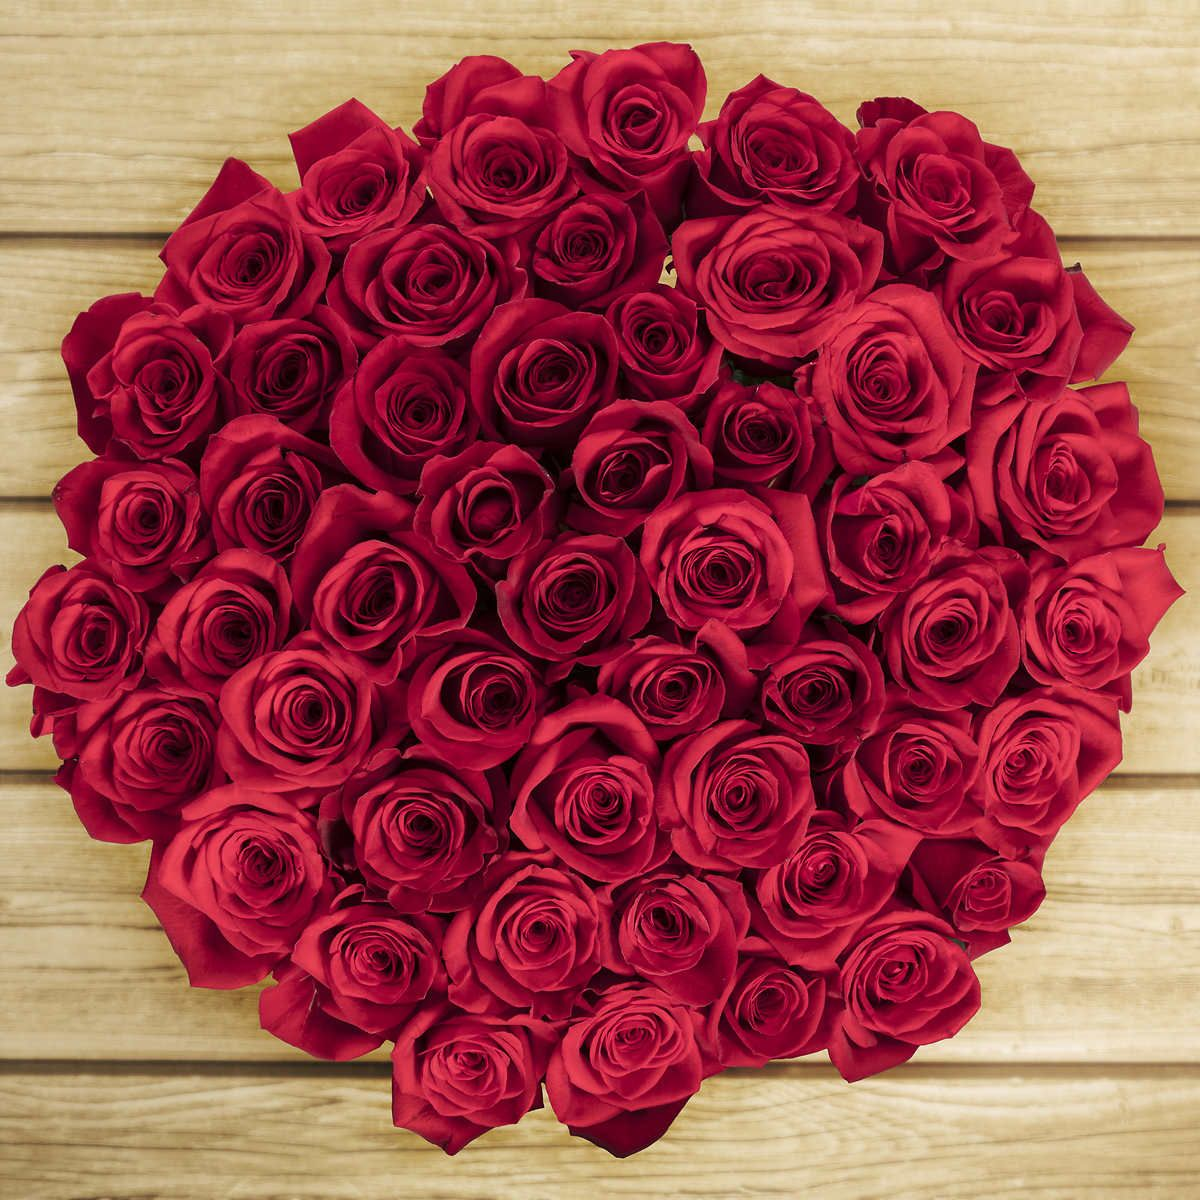 Costco Mothers Day Roses  Costco Is Selling 50 Roses for Only 3999